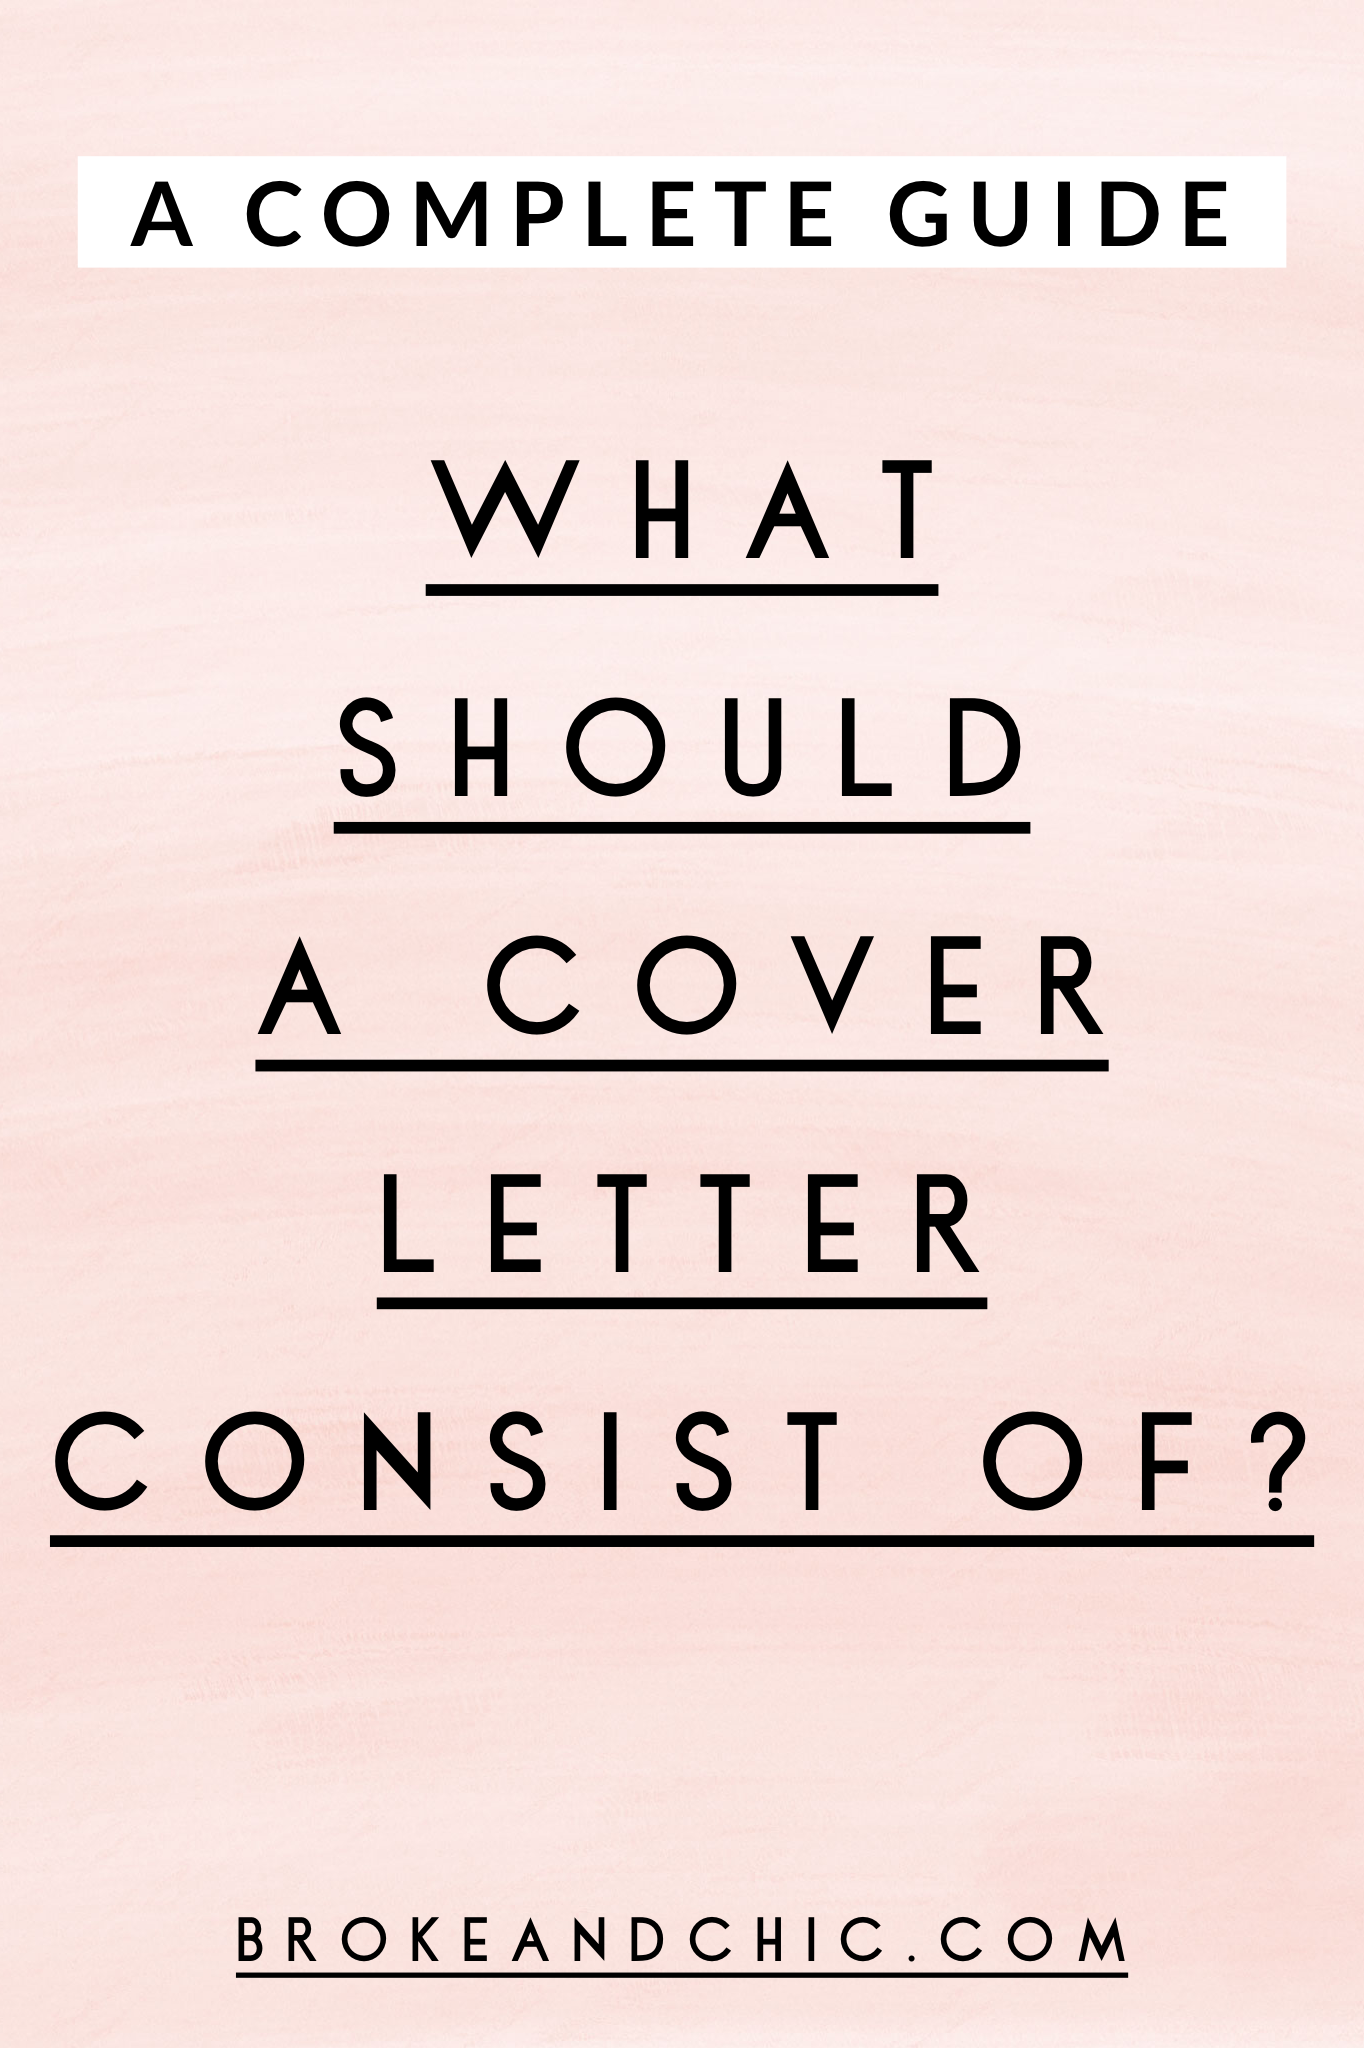 What Should a Cover Letter Consist Of?